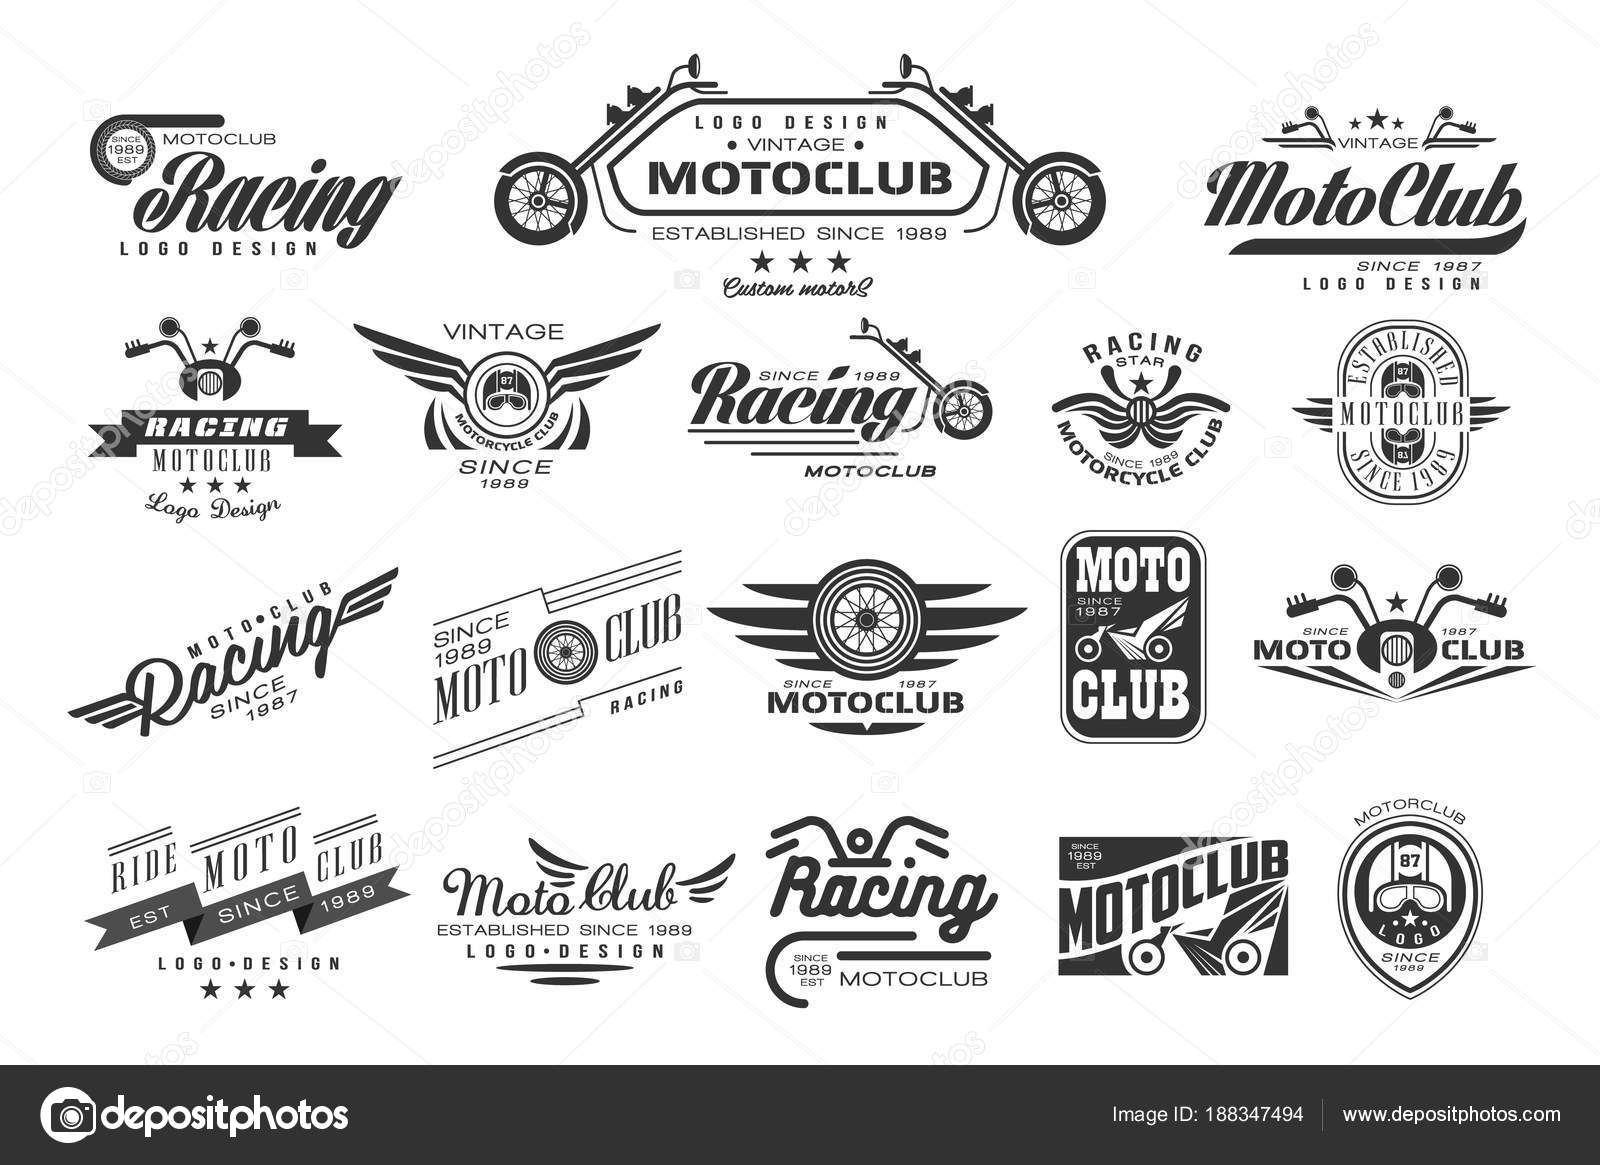 f7ae33f2dc0 Vintage logo design. Monochrome labels for motor club. Typography elements  for badge